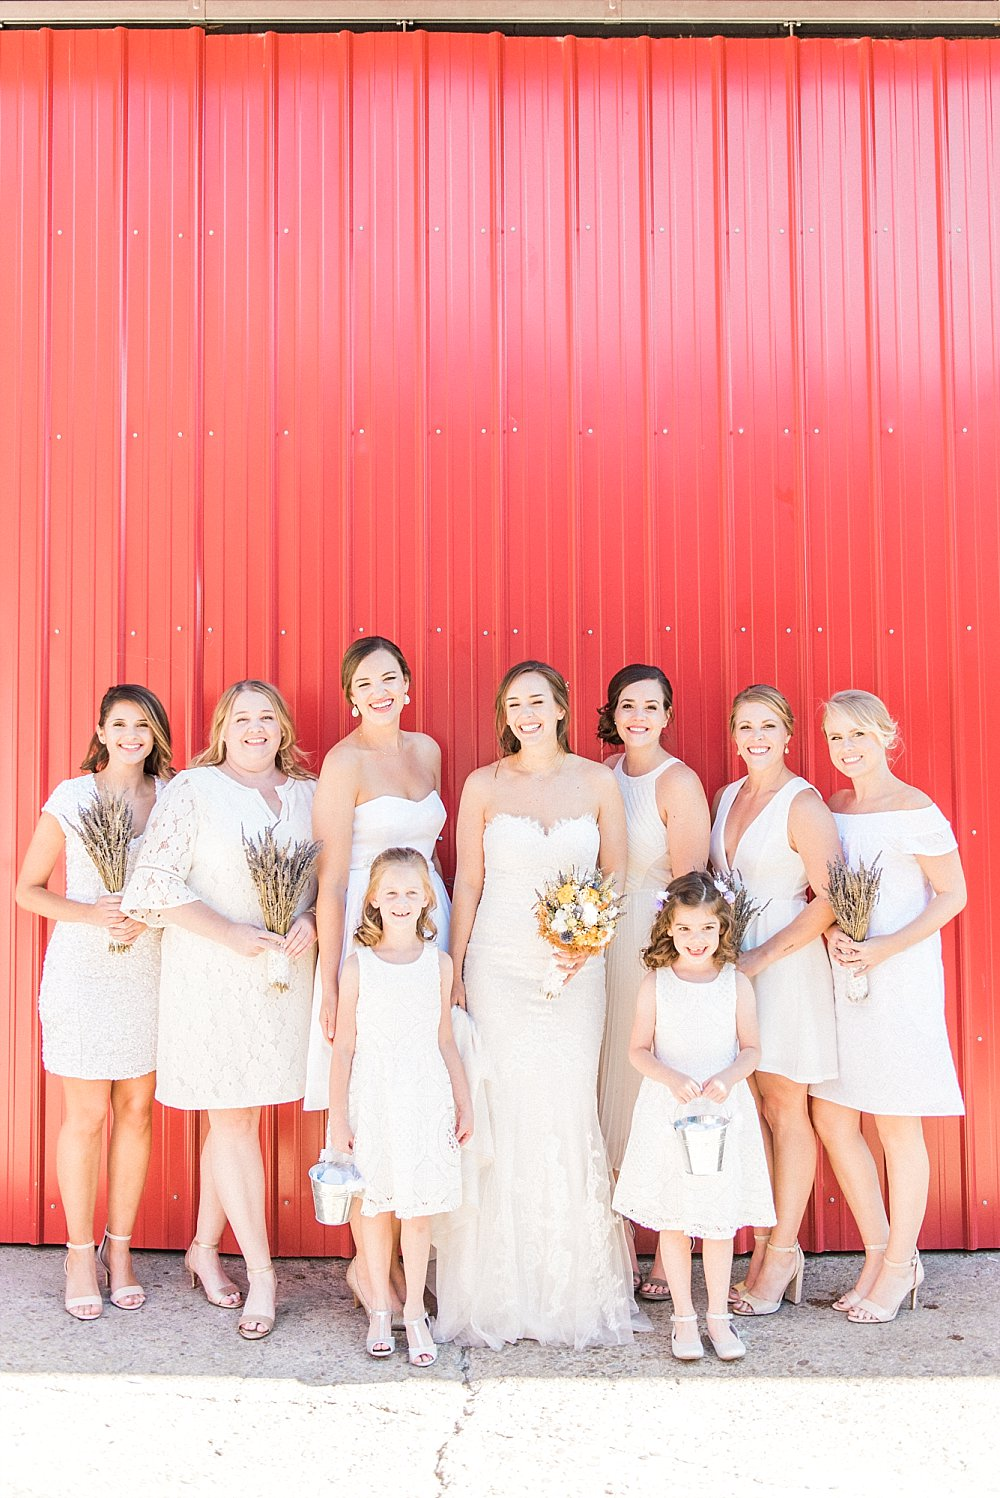 Relix Variety Theatre Wedding | Knoxville Wedding | Knoxville Wedding Photographer